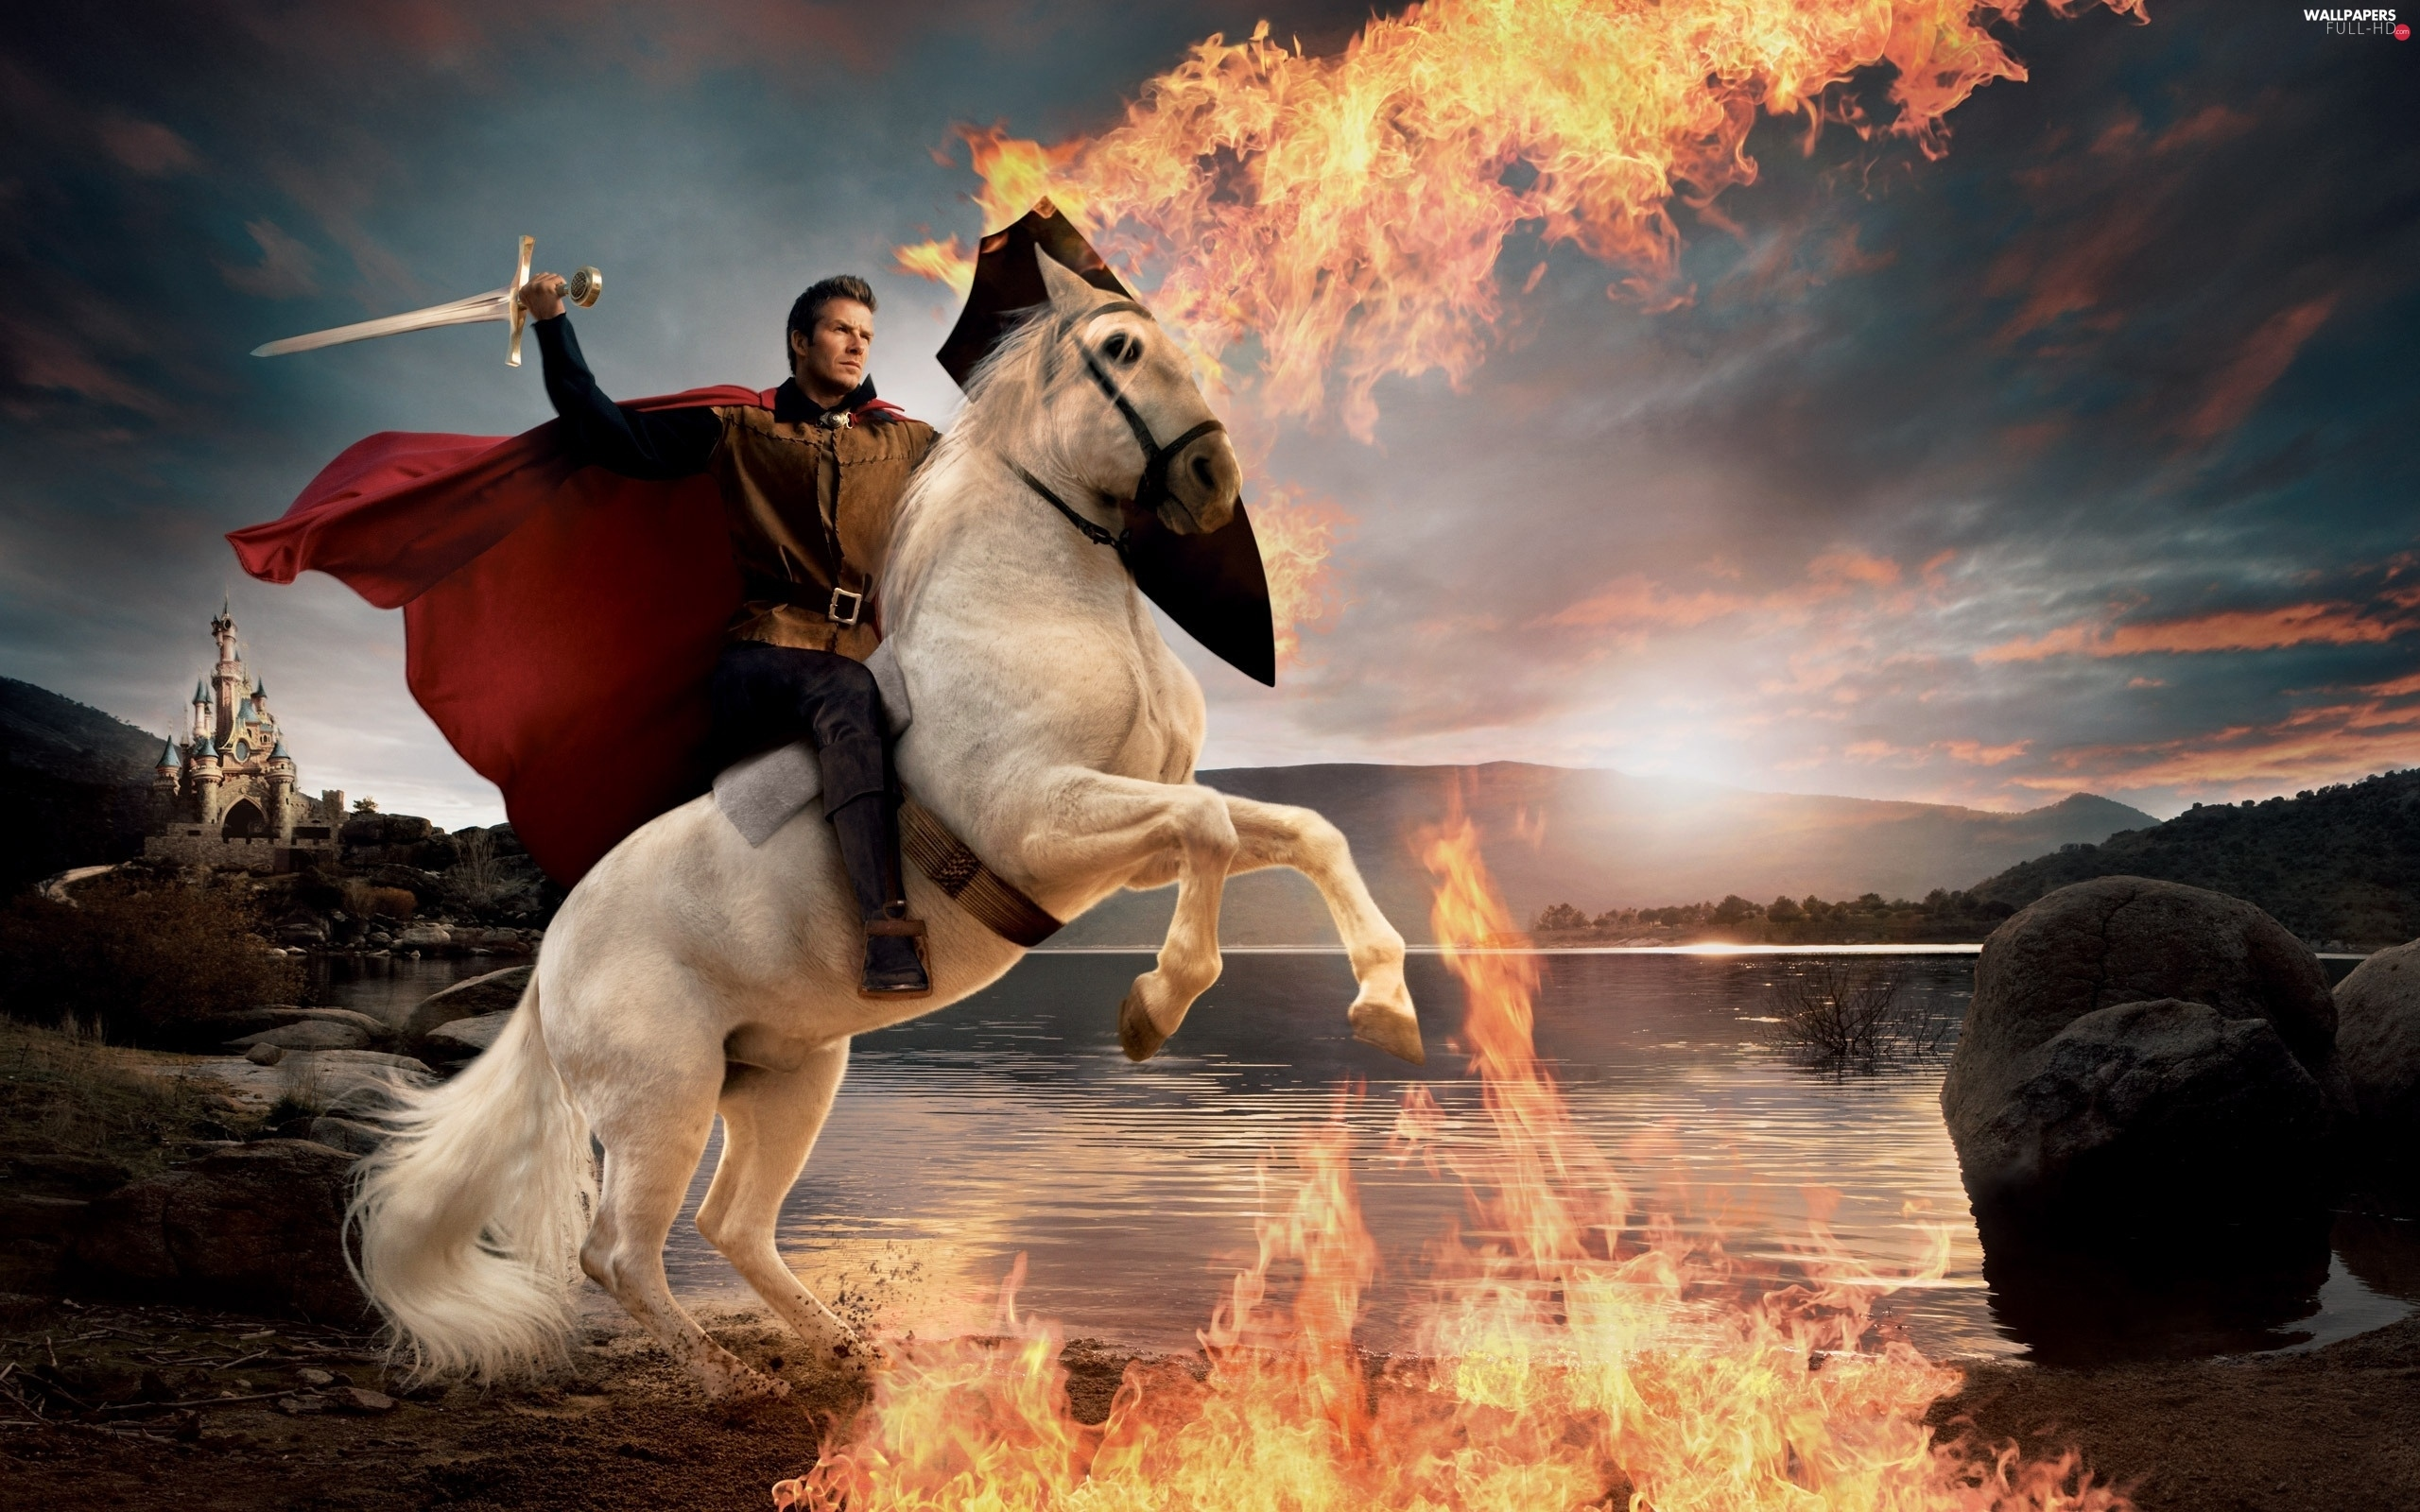 Big Fire, sword, a man, Horse